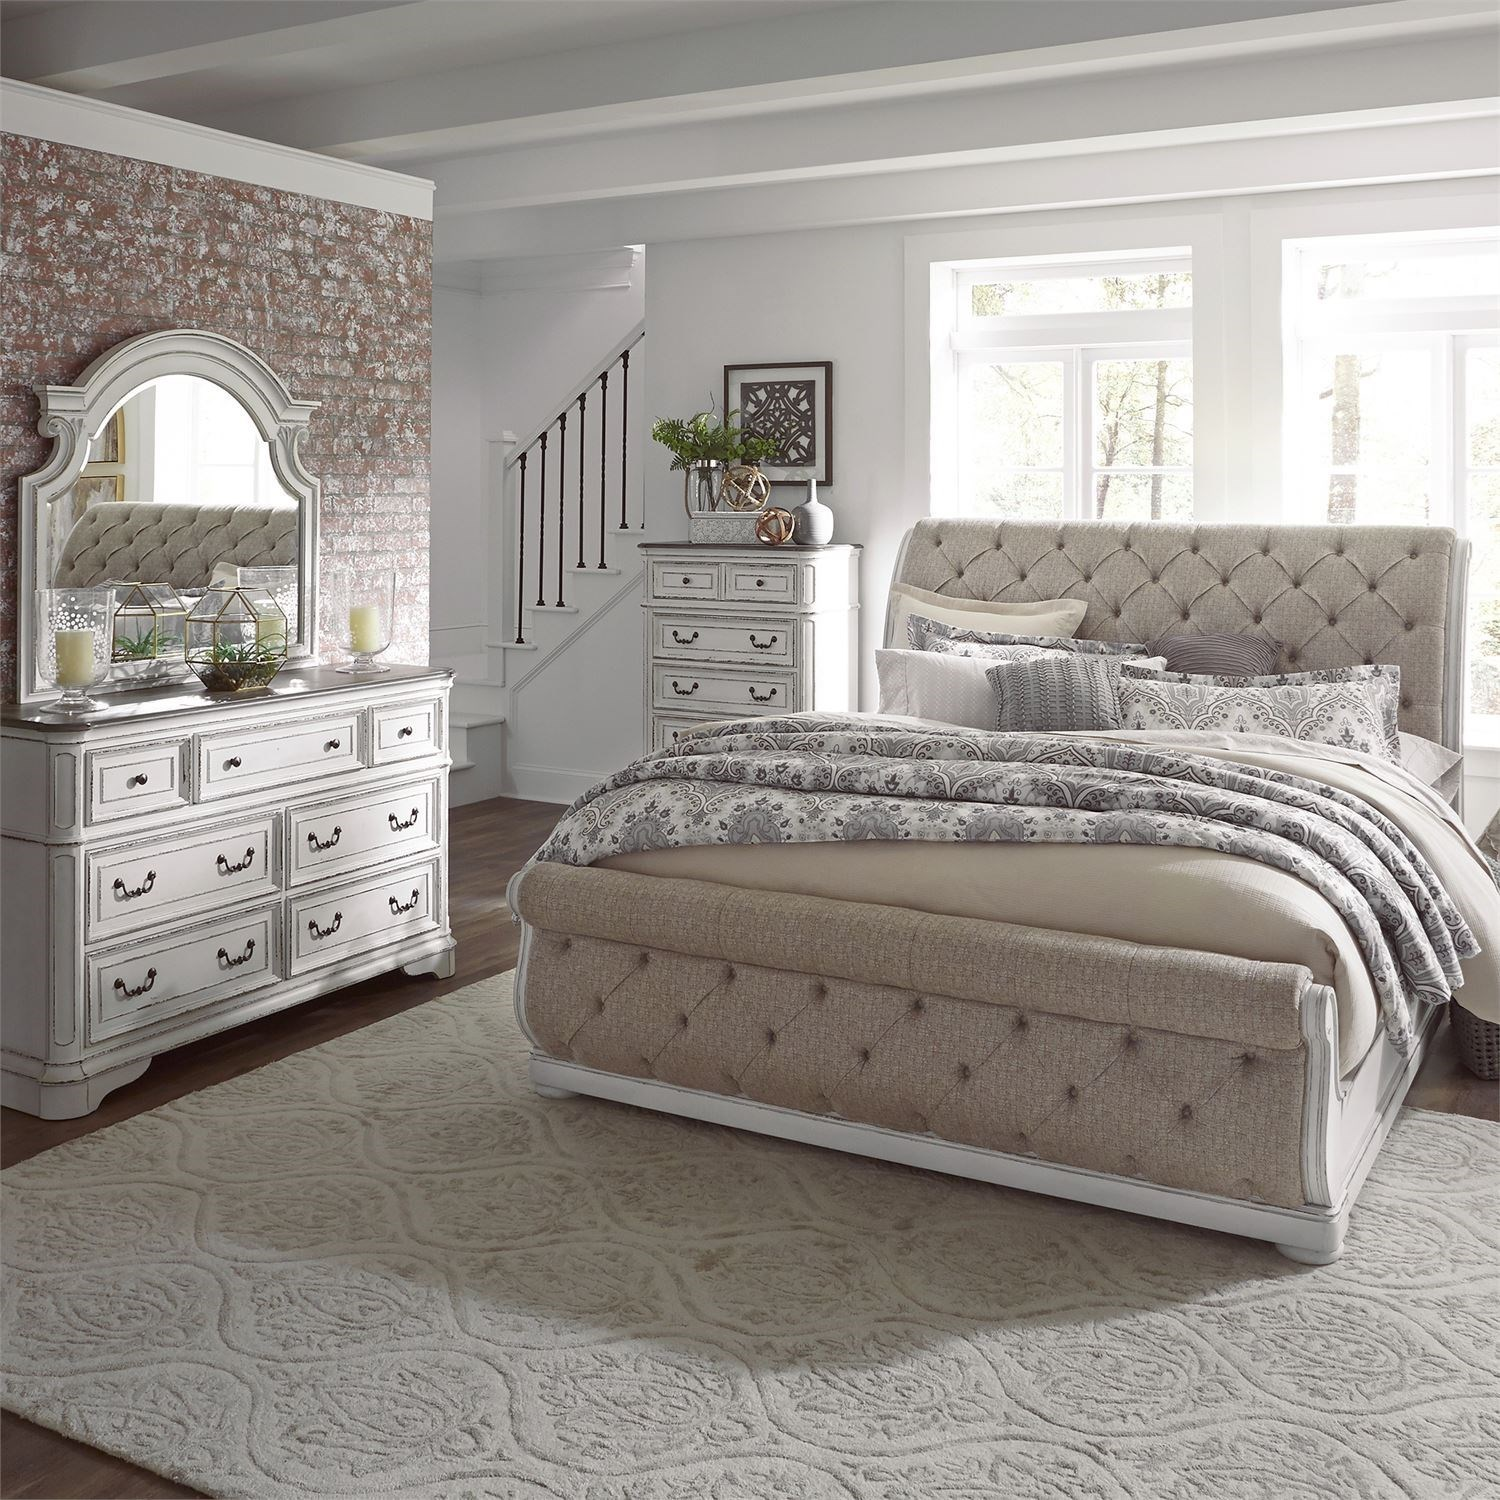 Magnolia Manor King Bedroom Group by Liberty Furniture at Van Hill Furniture